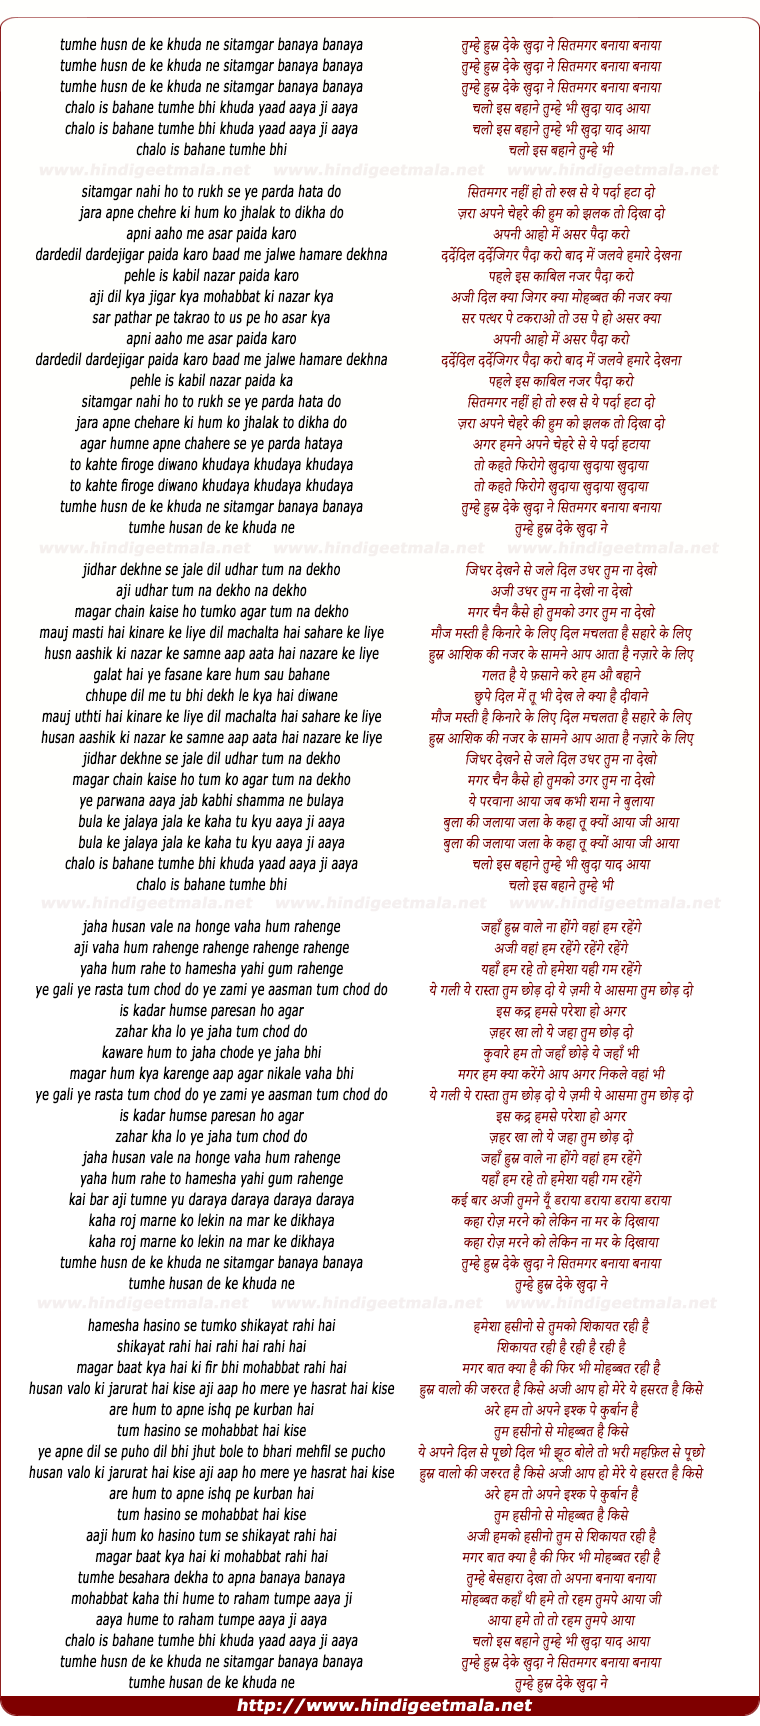 lyrics of song Tumhe Husn De Ke Khuda Ne Sitamgar Banaya